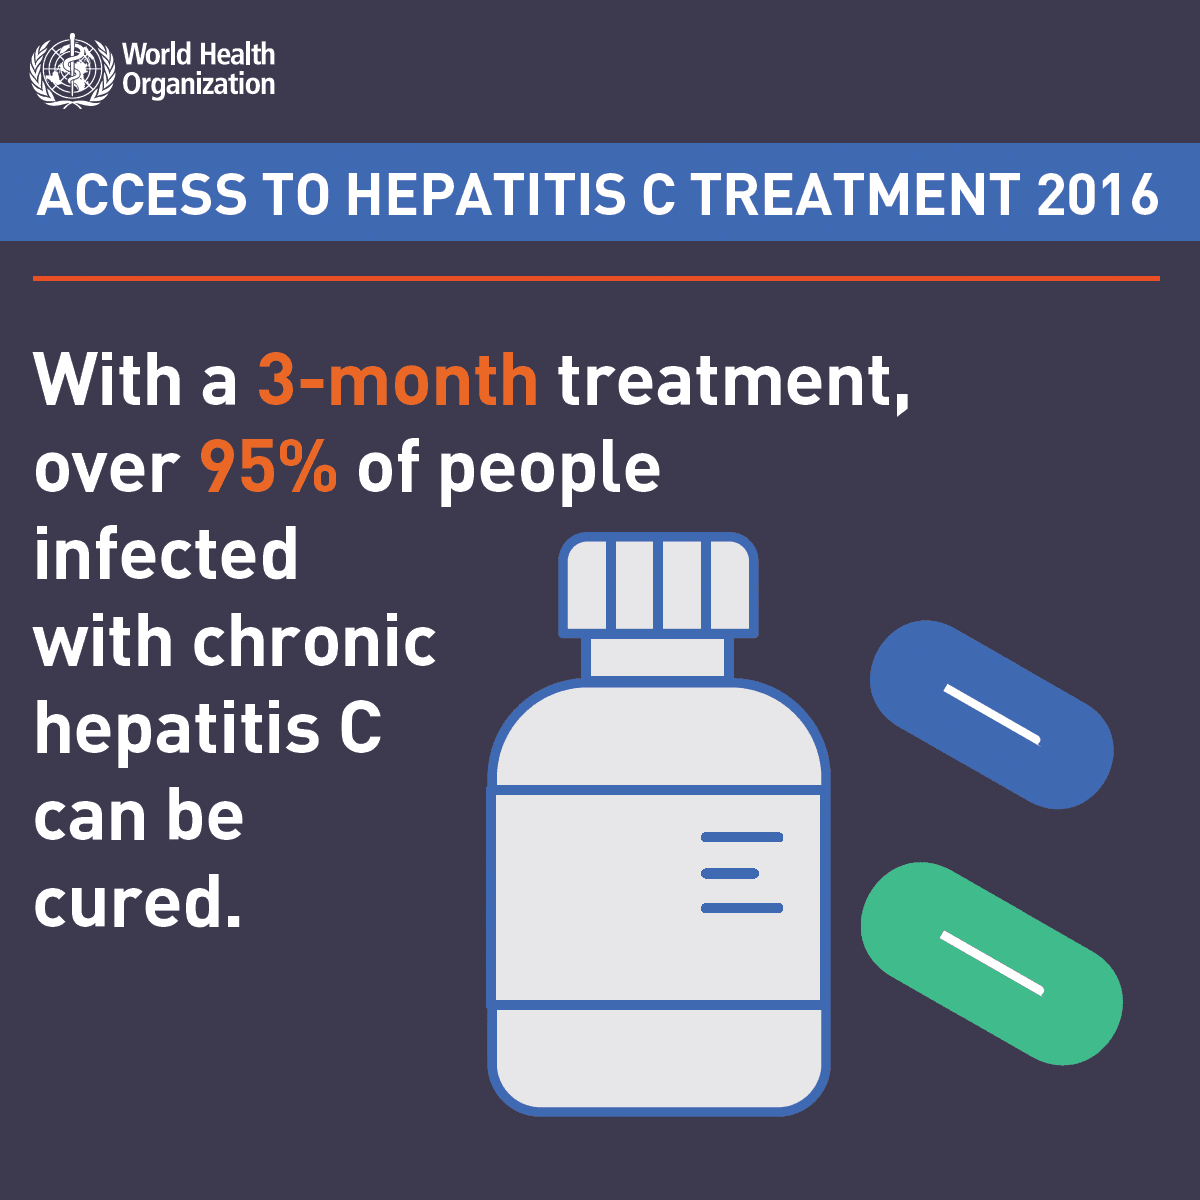 Access to Hepatitis C Treatment 2016